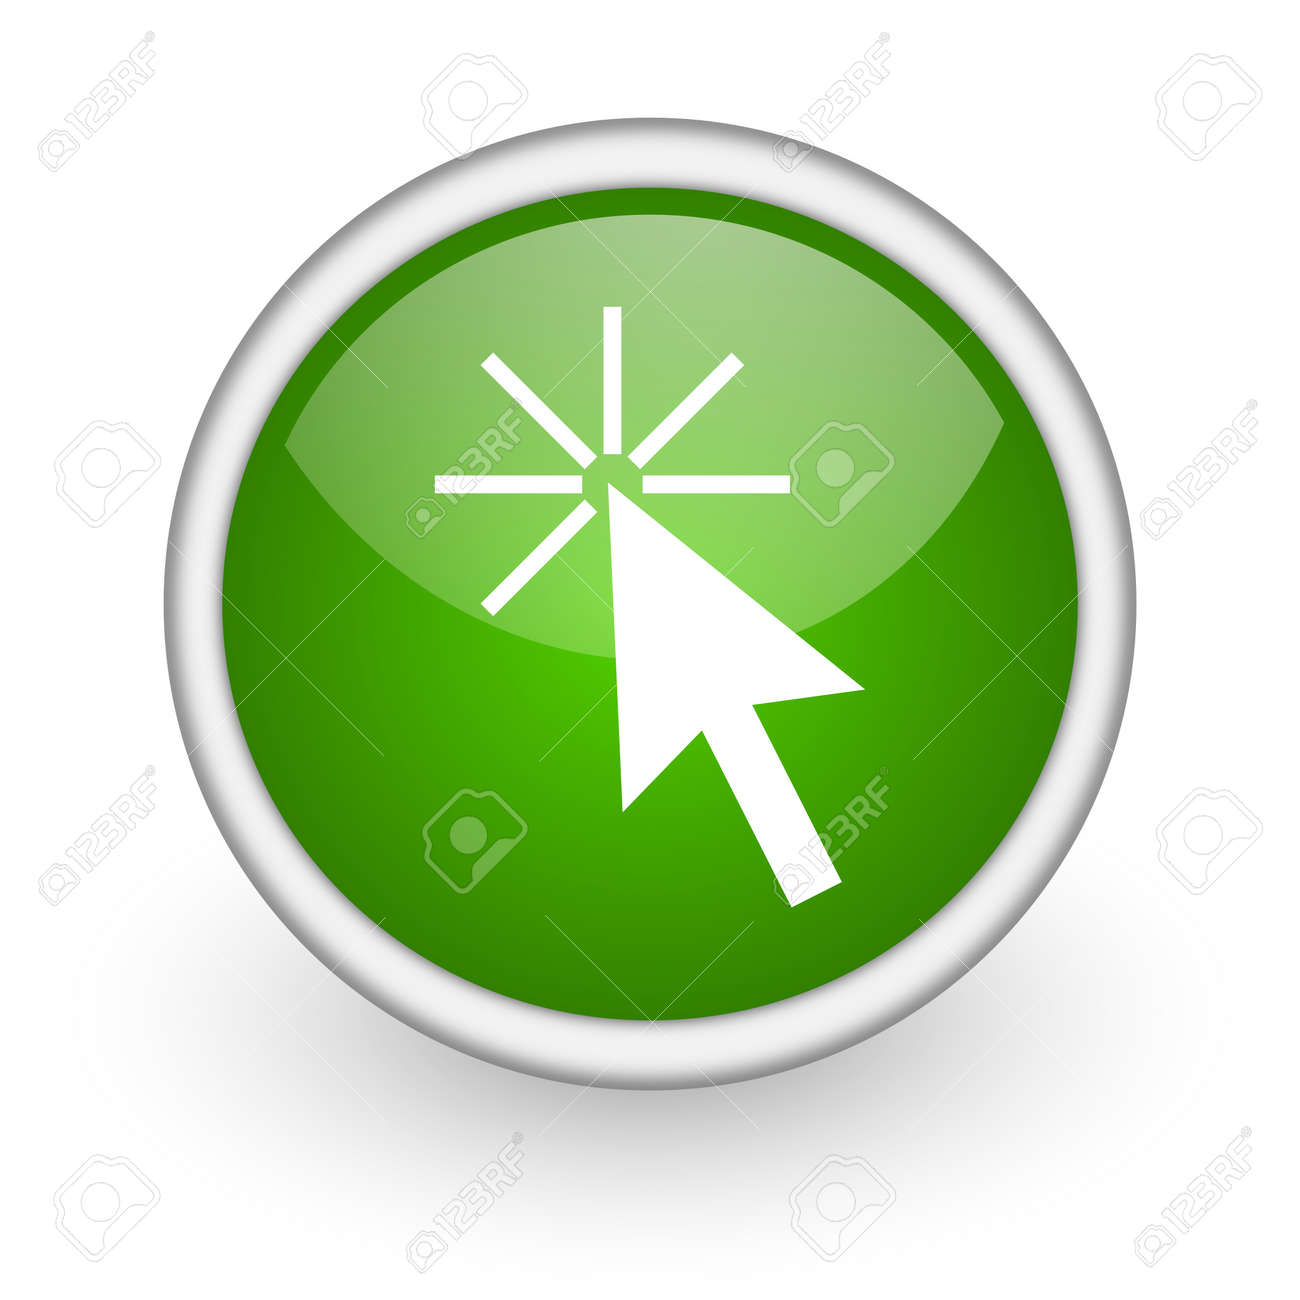 click here green circle glossy web icon on white background Stock Photo - 17647886